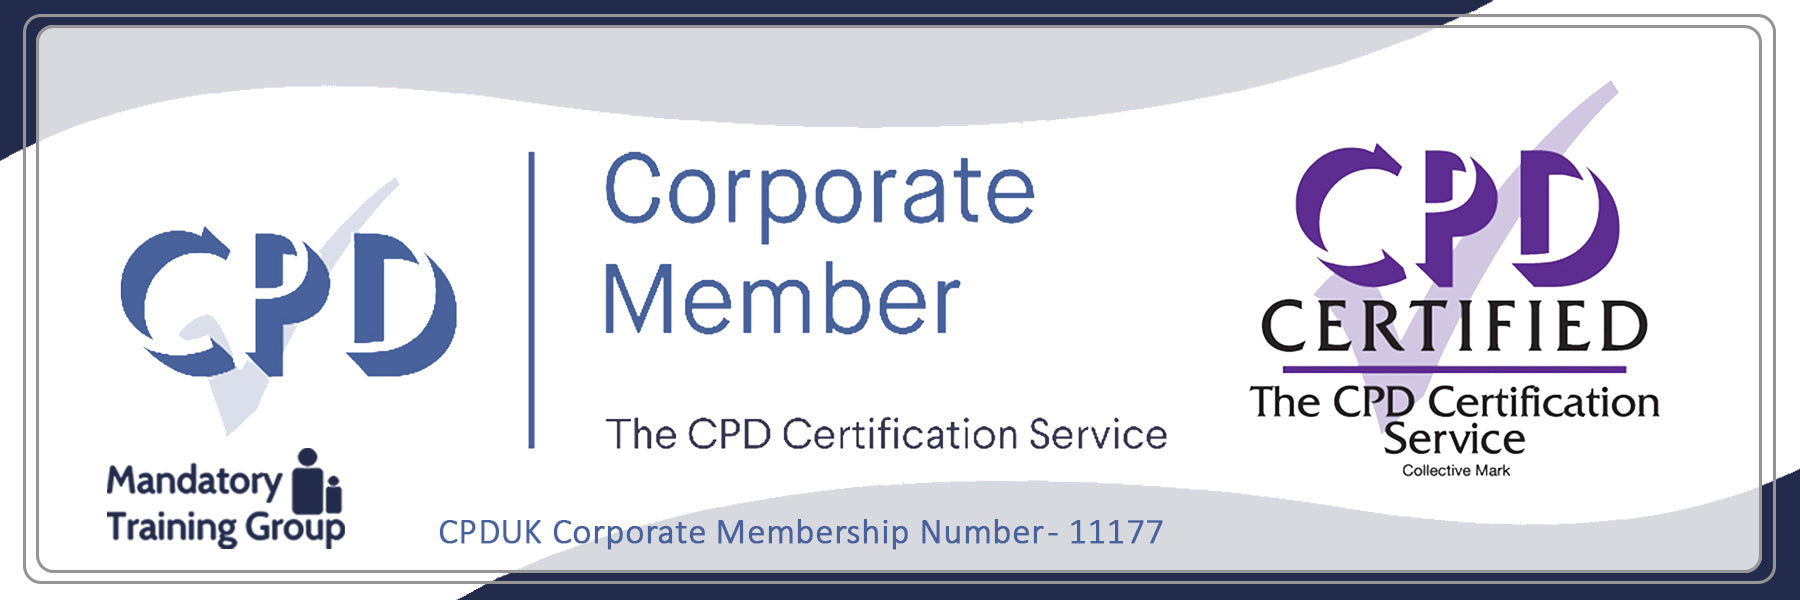 Care Certificate Standard 12 + Train the Trainer + Trainer Pack - CPDUK Accredited - The Mandatory Training Group UK -